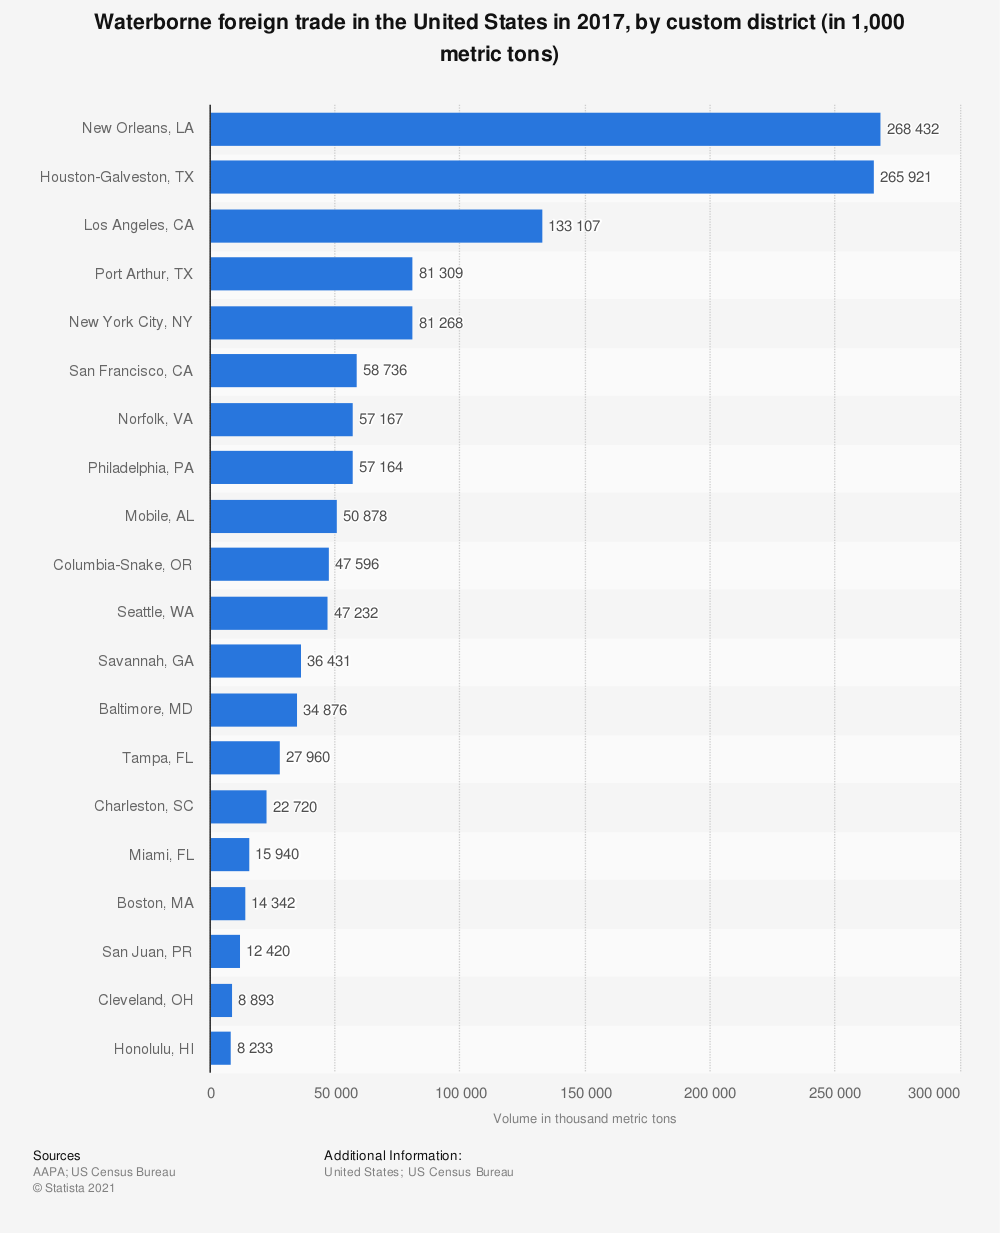 Statistic: Waterborne foreign trade in the United States in 2017, by custom district (in 1,000 metric tons) | Statista